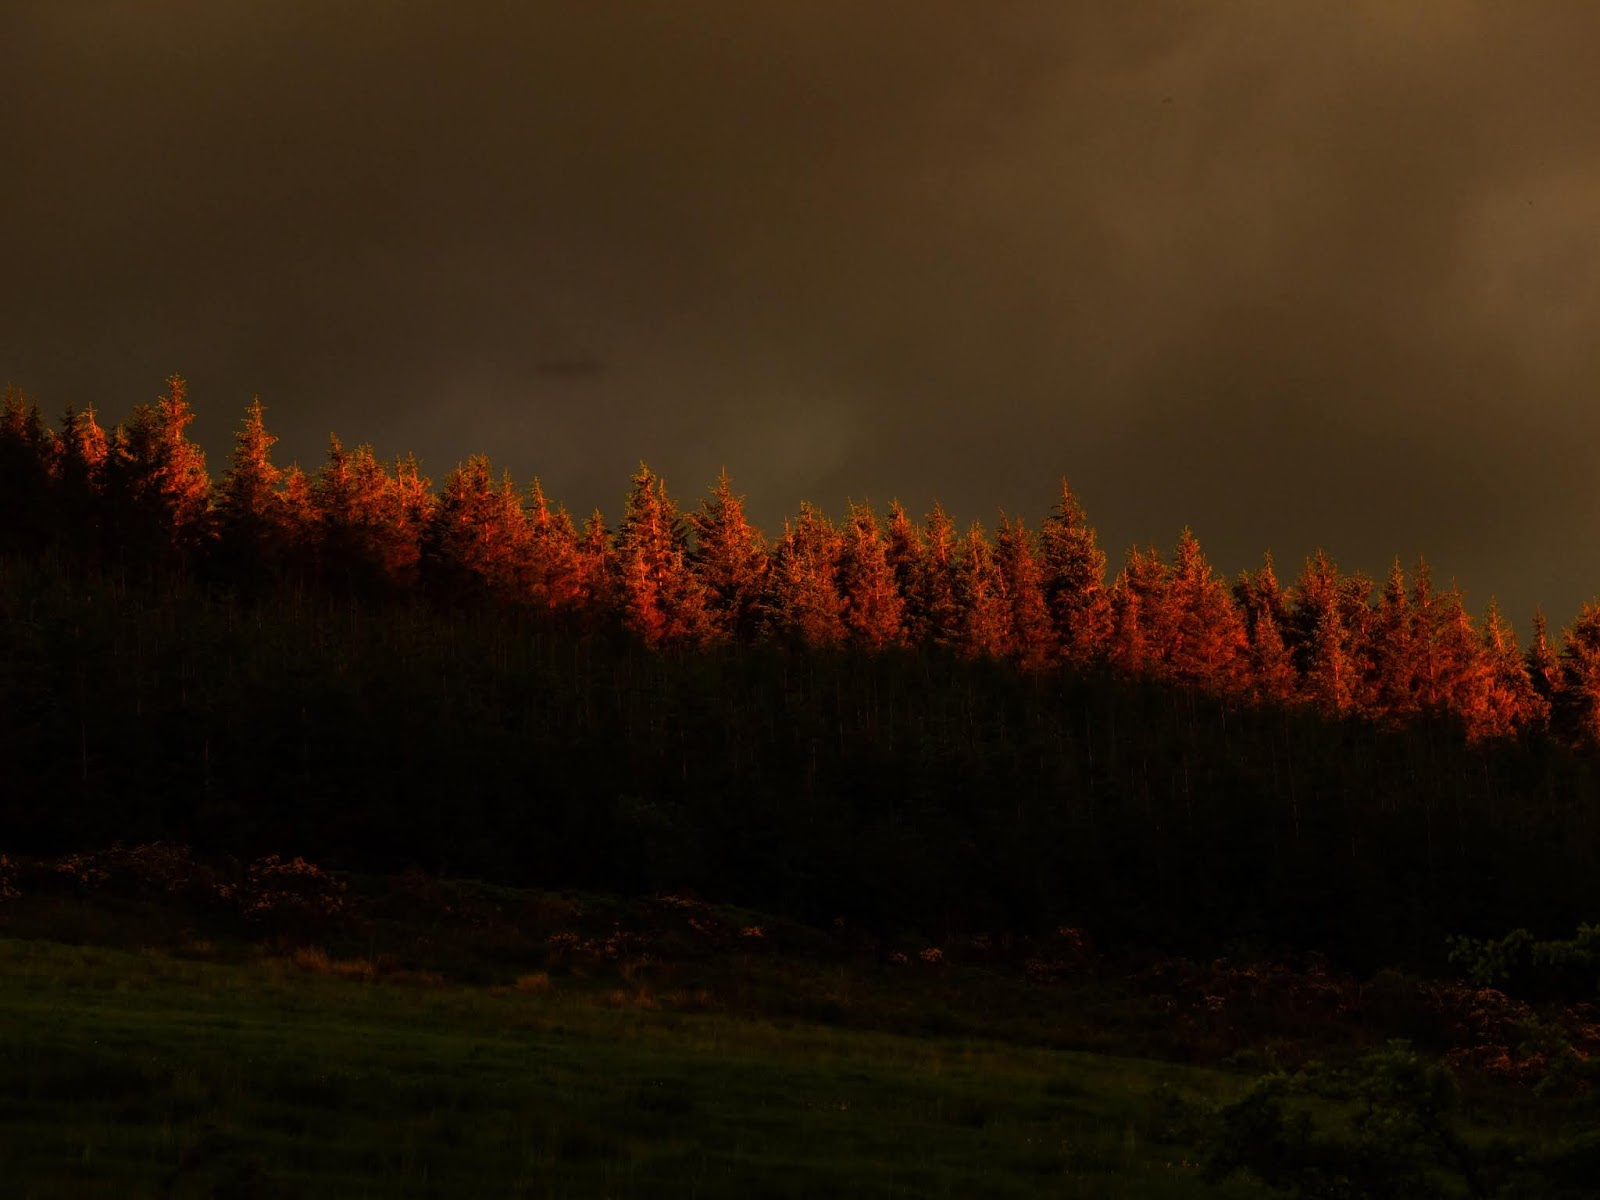 Tops of conifer trees on top of a mountain lit up by the setting sun on the other side of the valley in Co.Cork, Ireland.